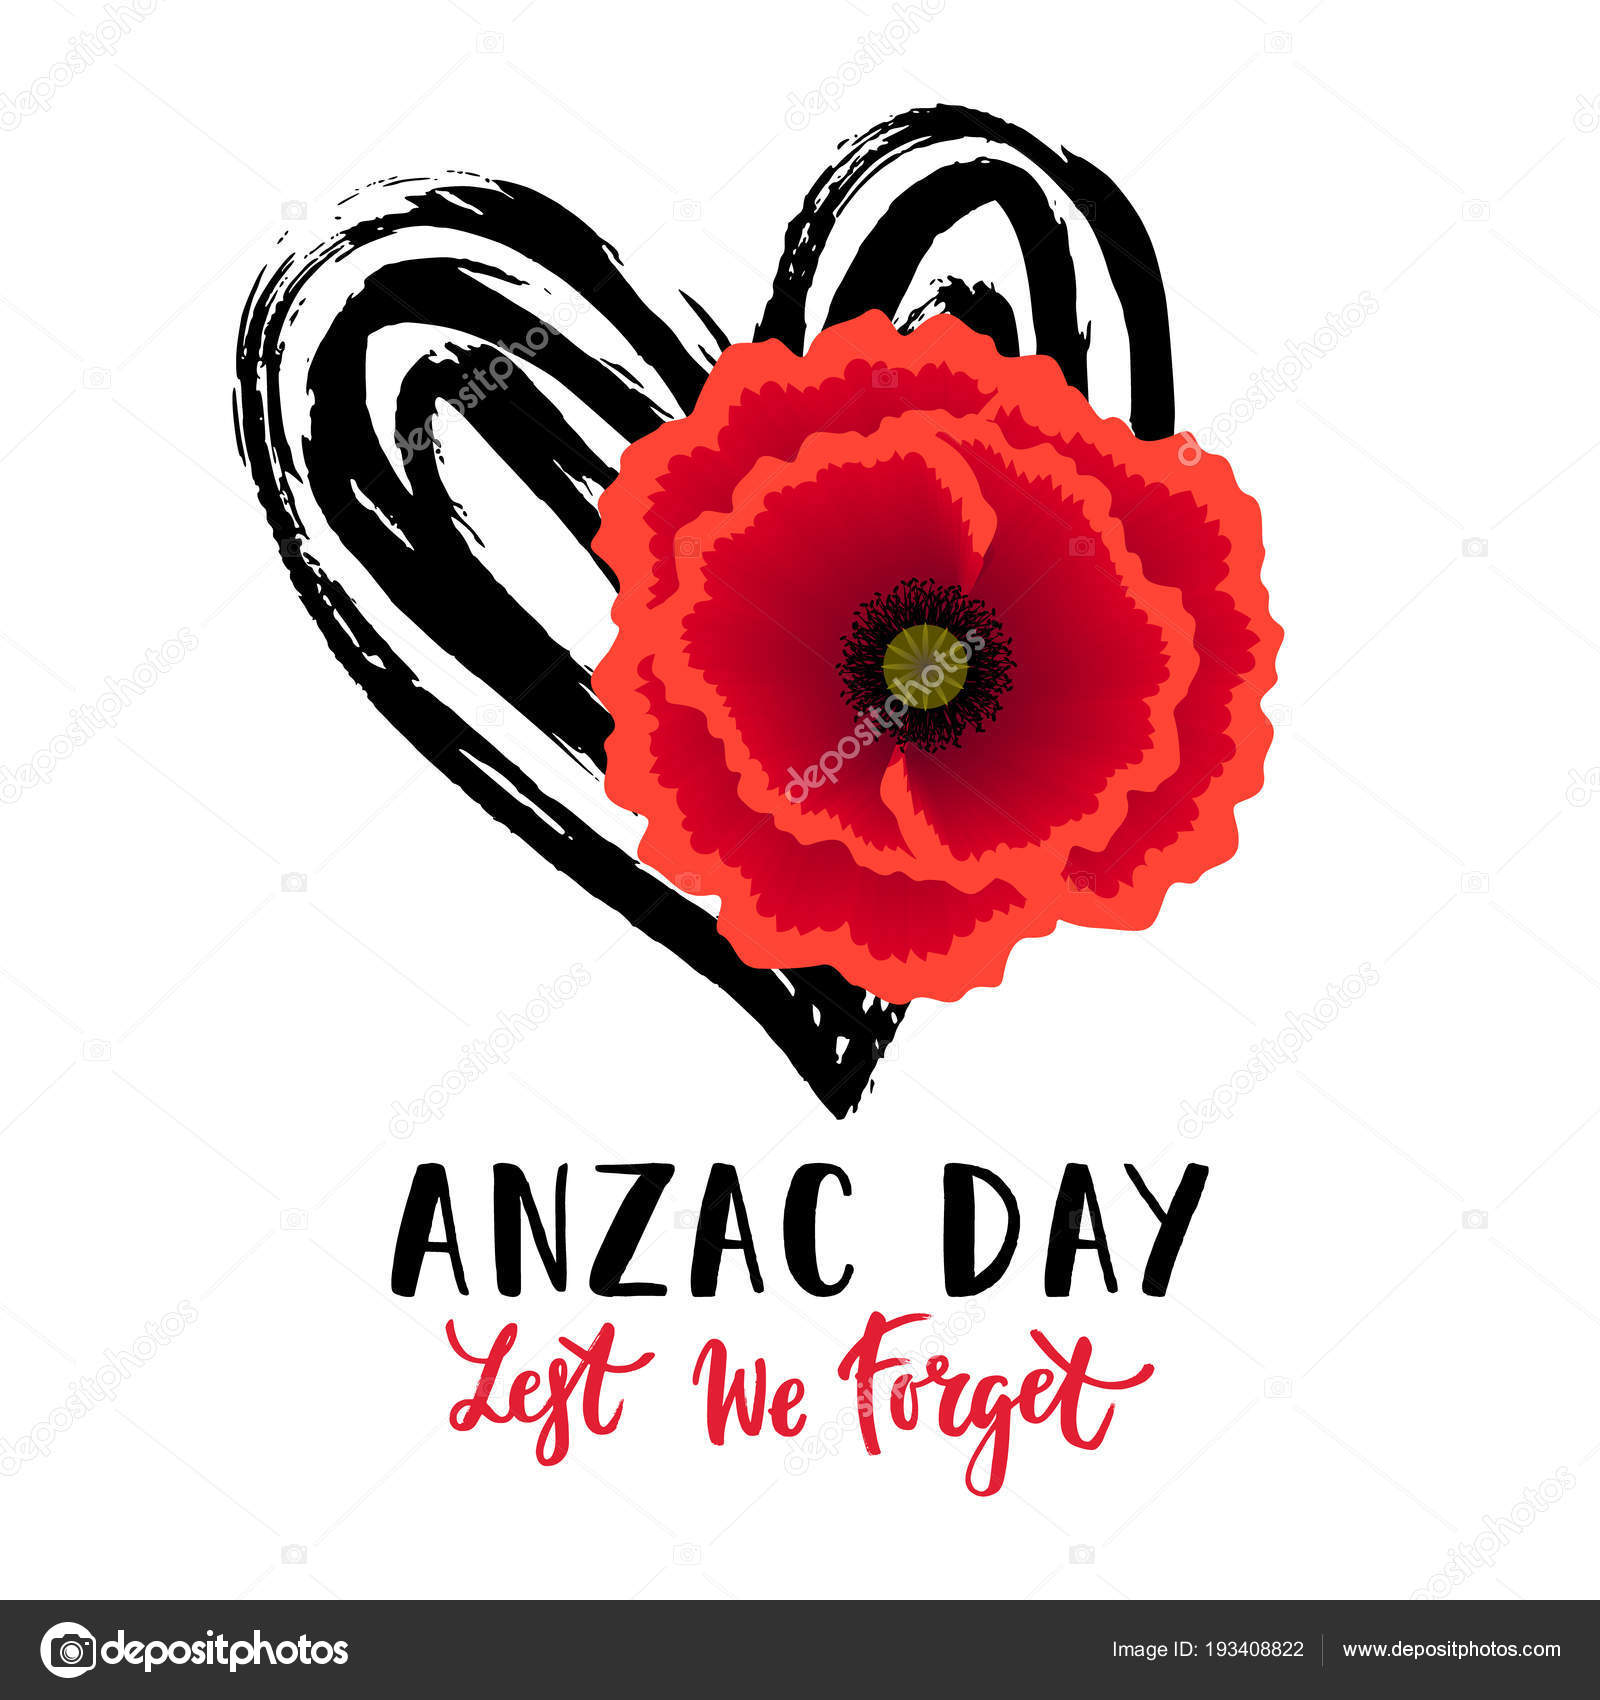 Vector illustration bright realistic poppy flower remembrance day vector illustration of a bright realistic poppy flower remembrance day symbol lest we forget lettering anzac day lettering vector by barkarola mightylinksfo